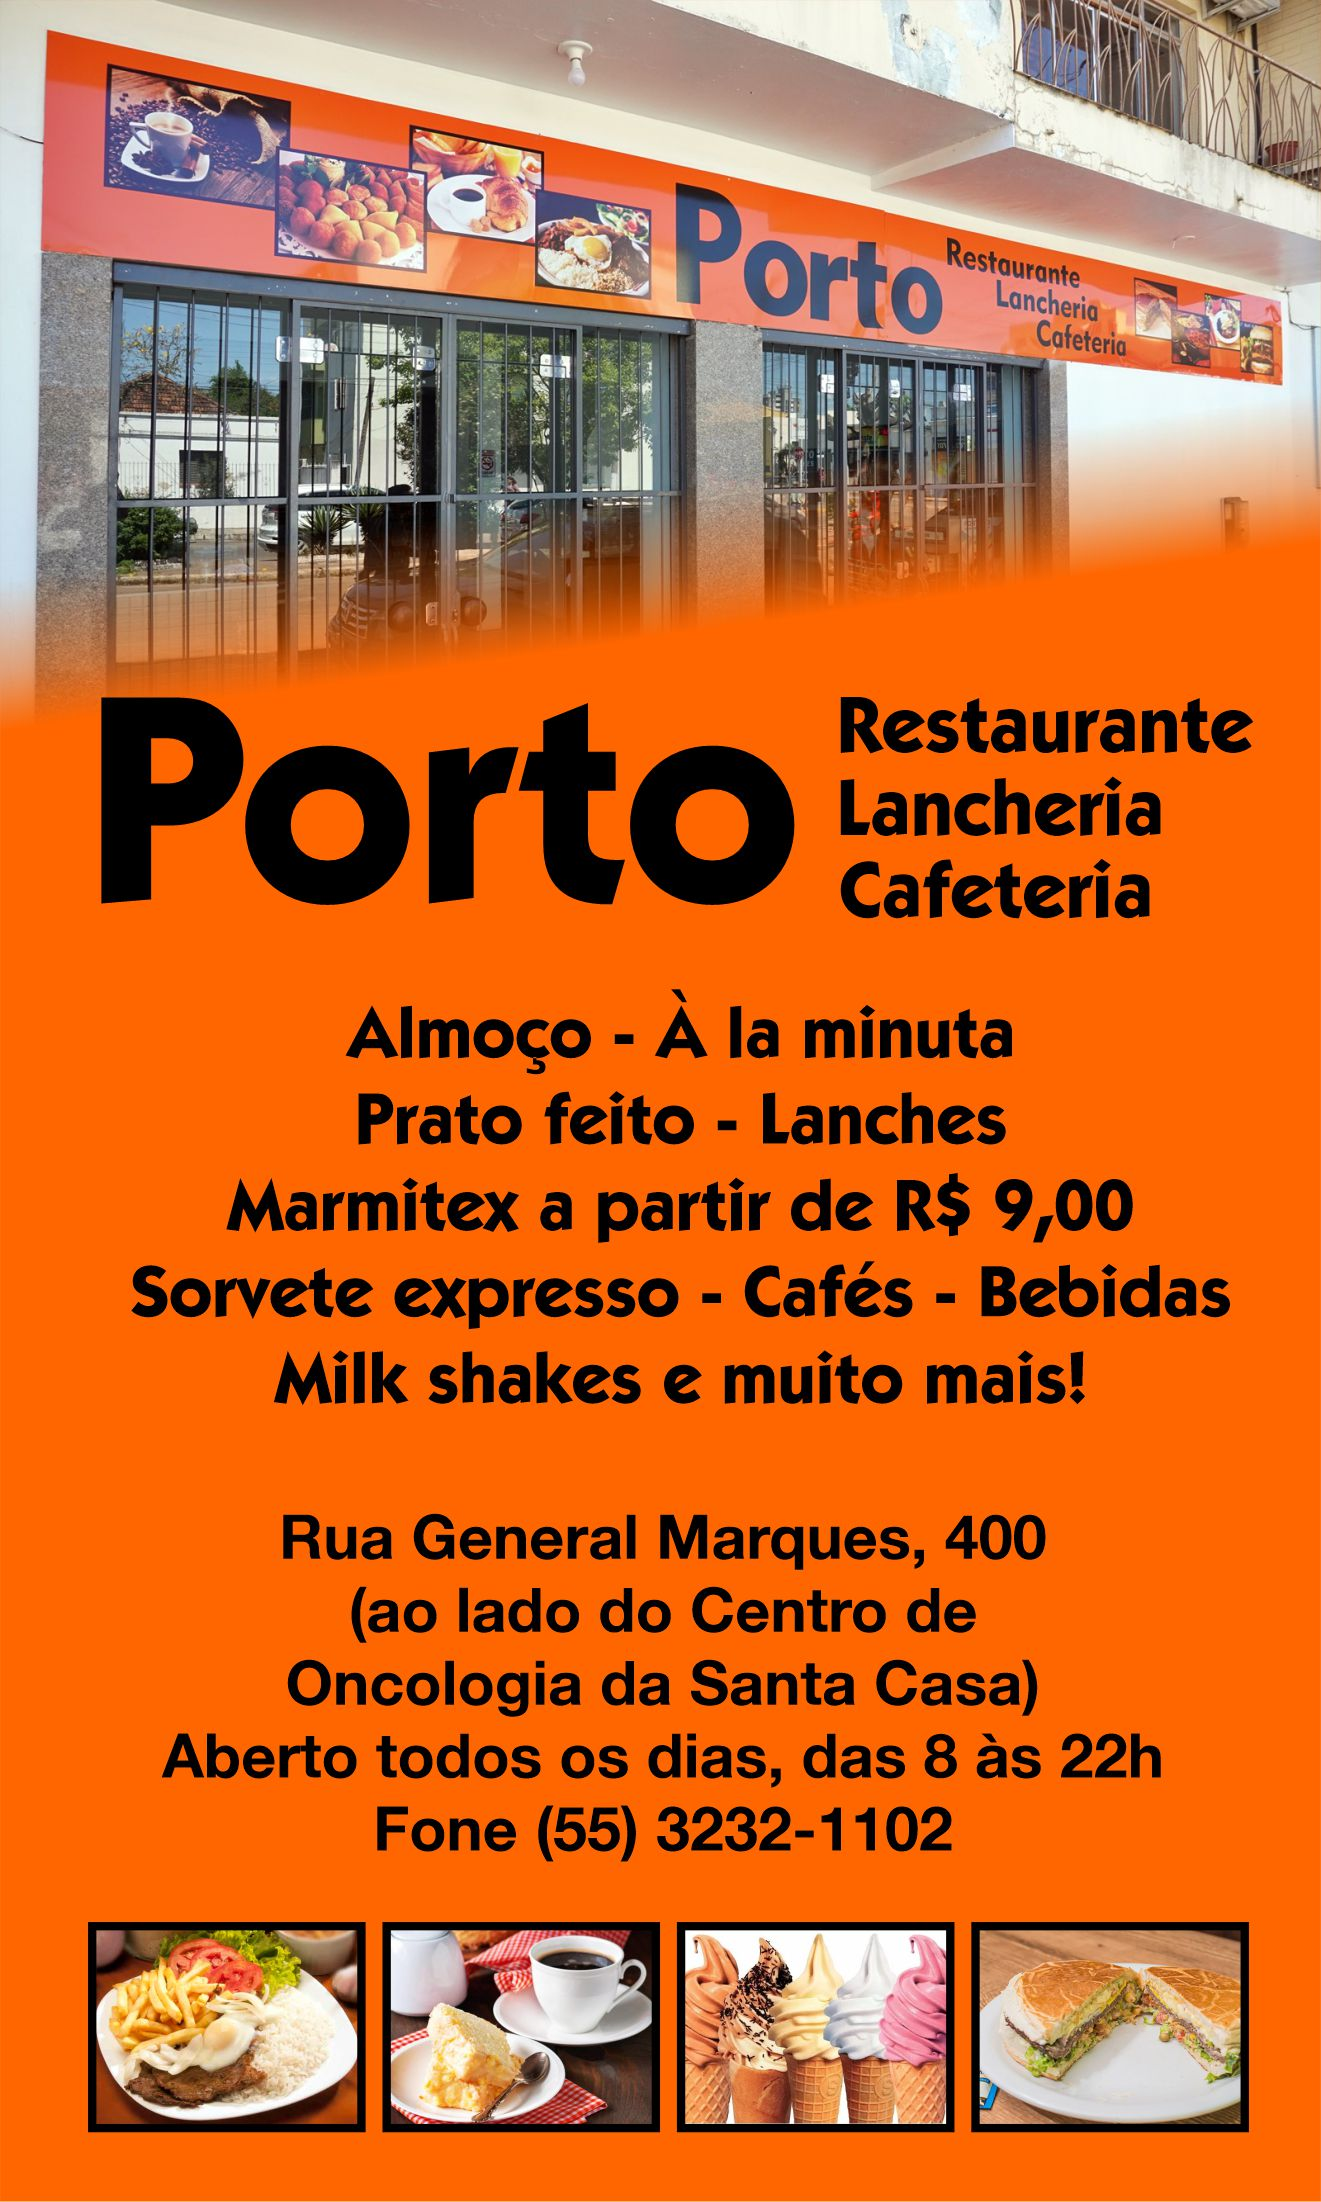 Inauguração da filial Porto Lanches na quinta, 10 de outubro